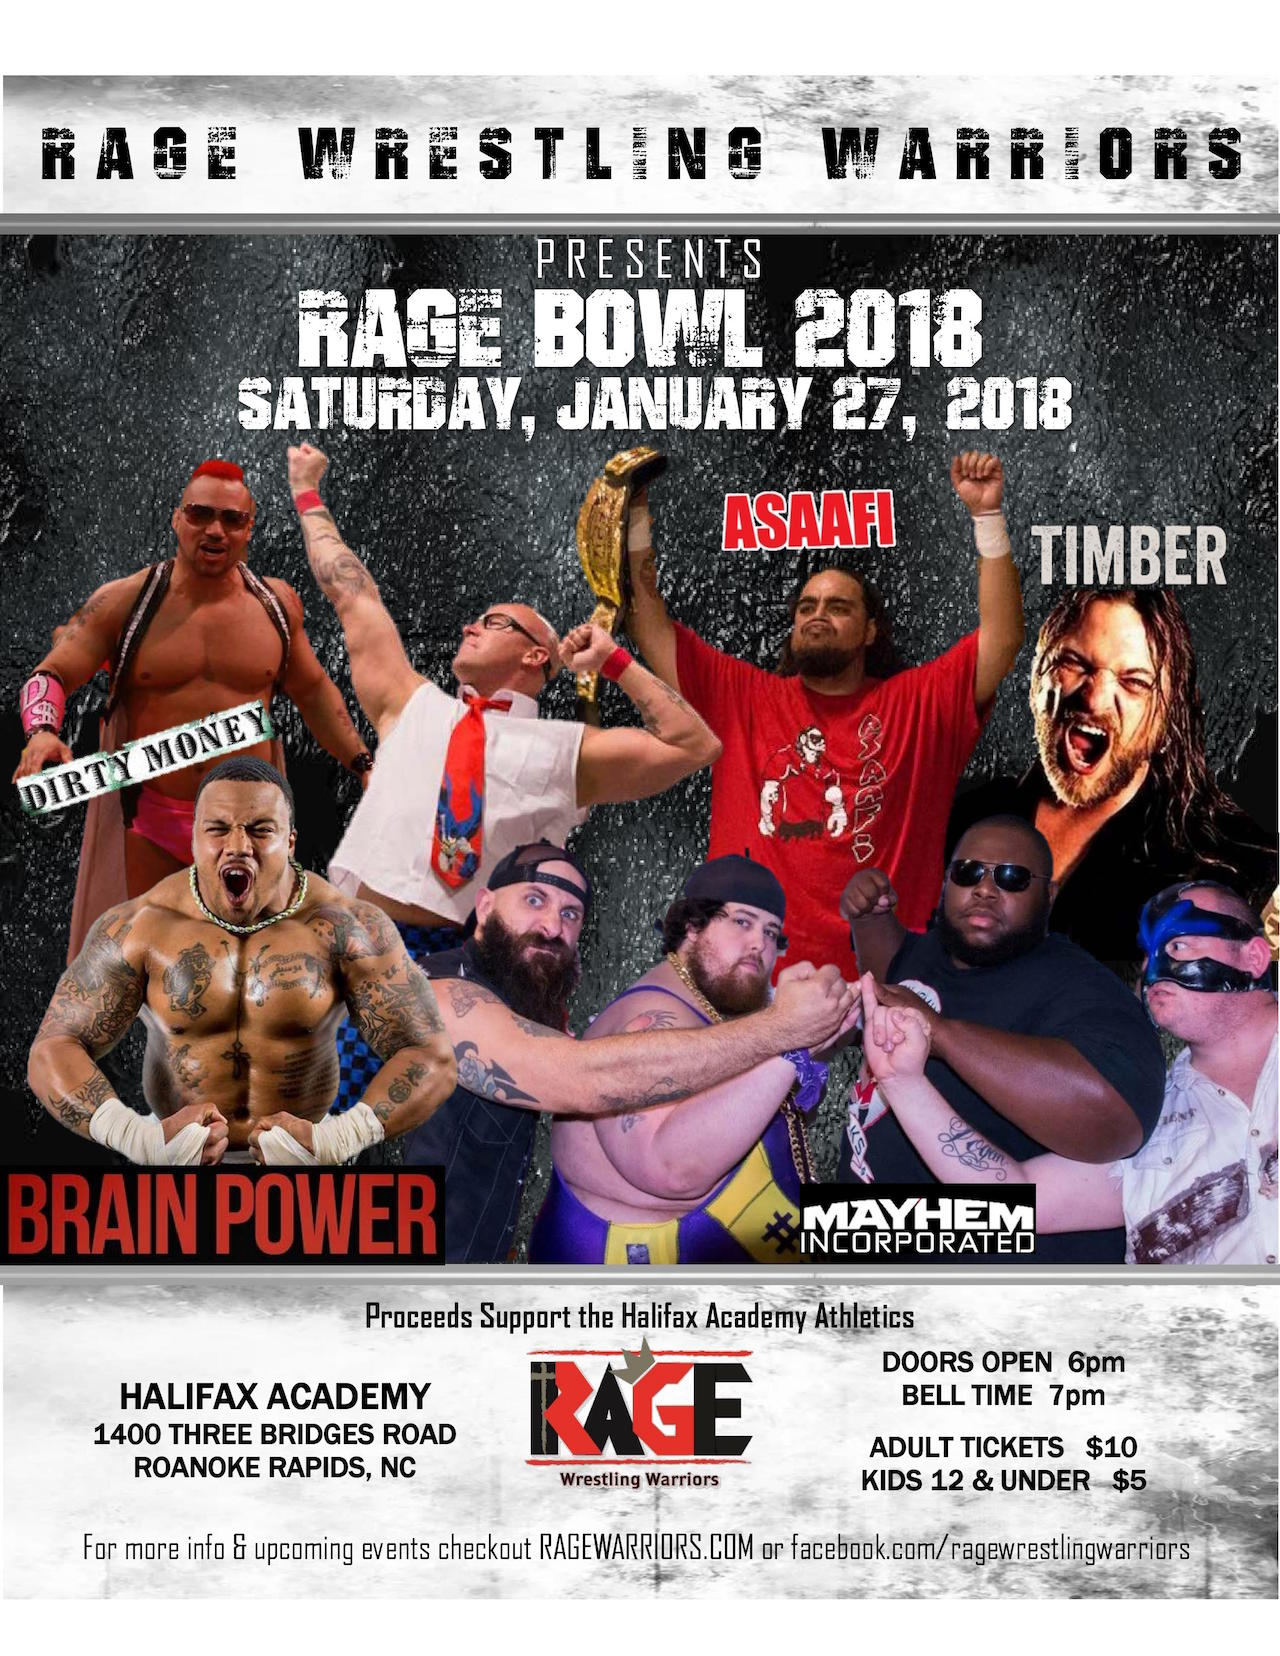 RRSpin - RAGE Wrestling event to benefit HA athletics